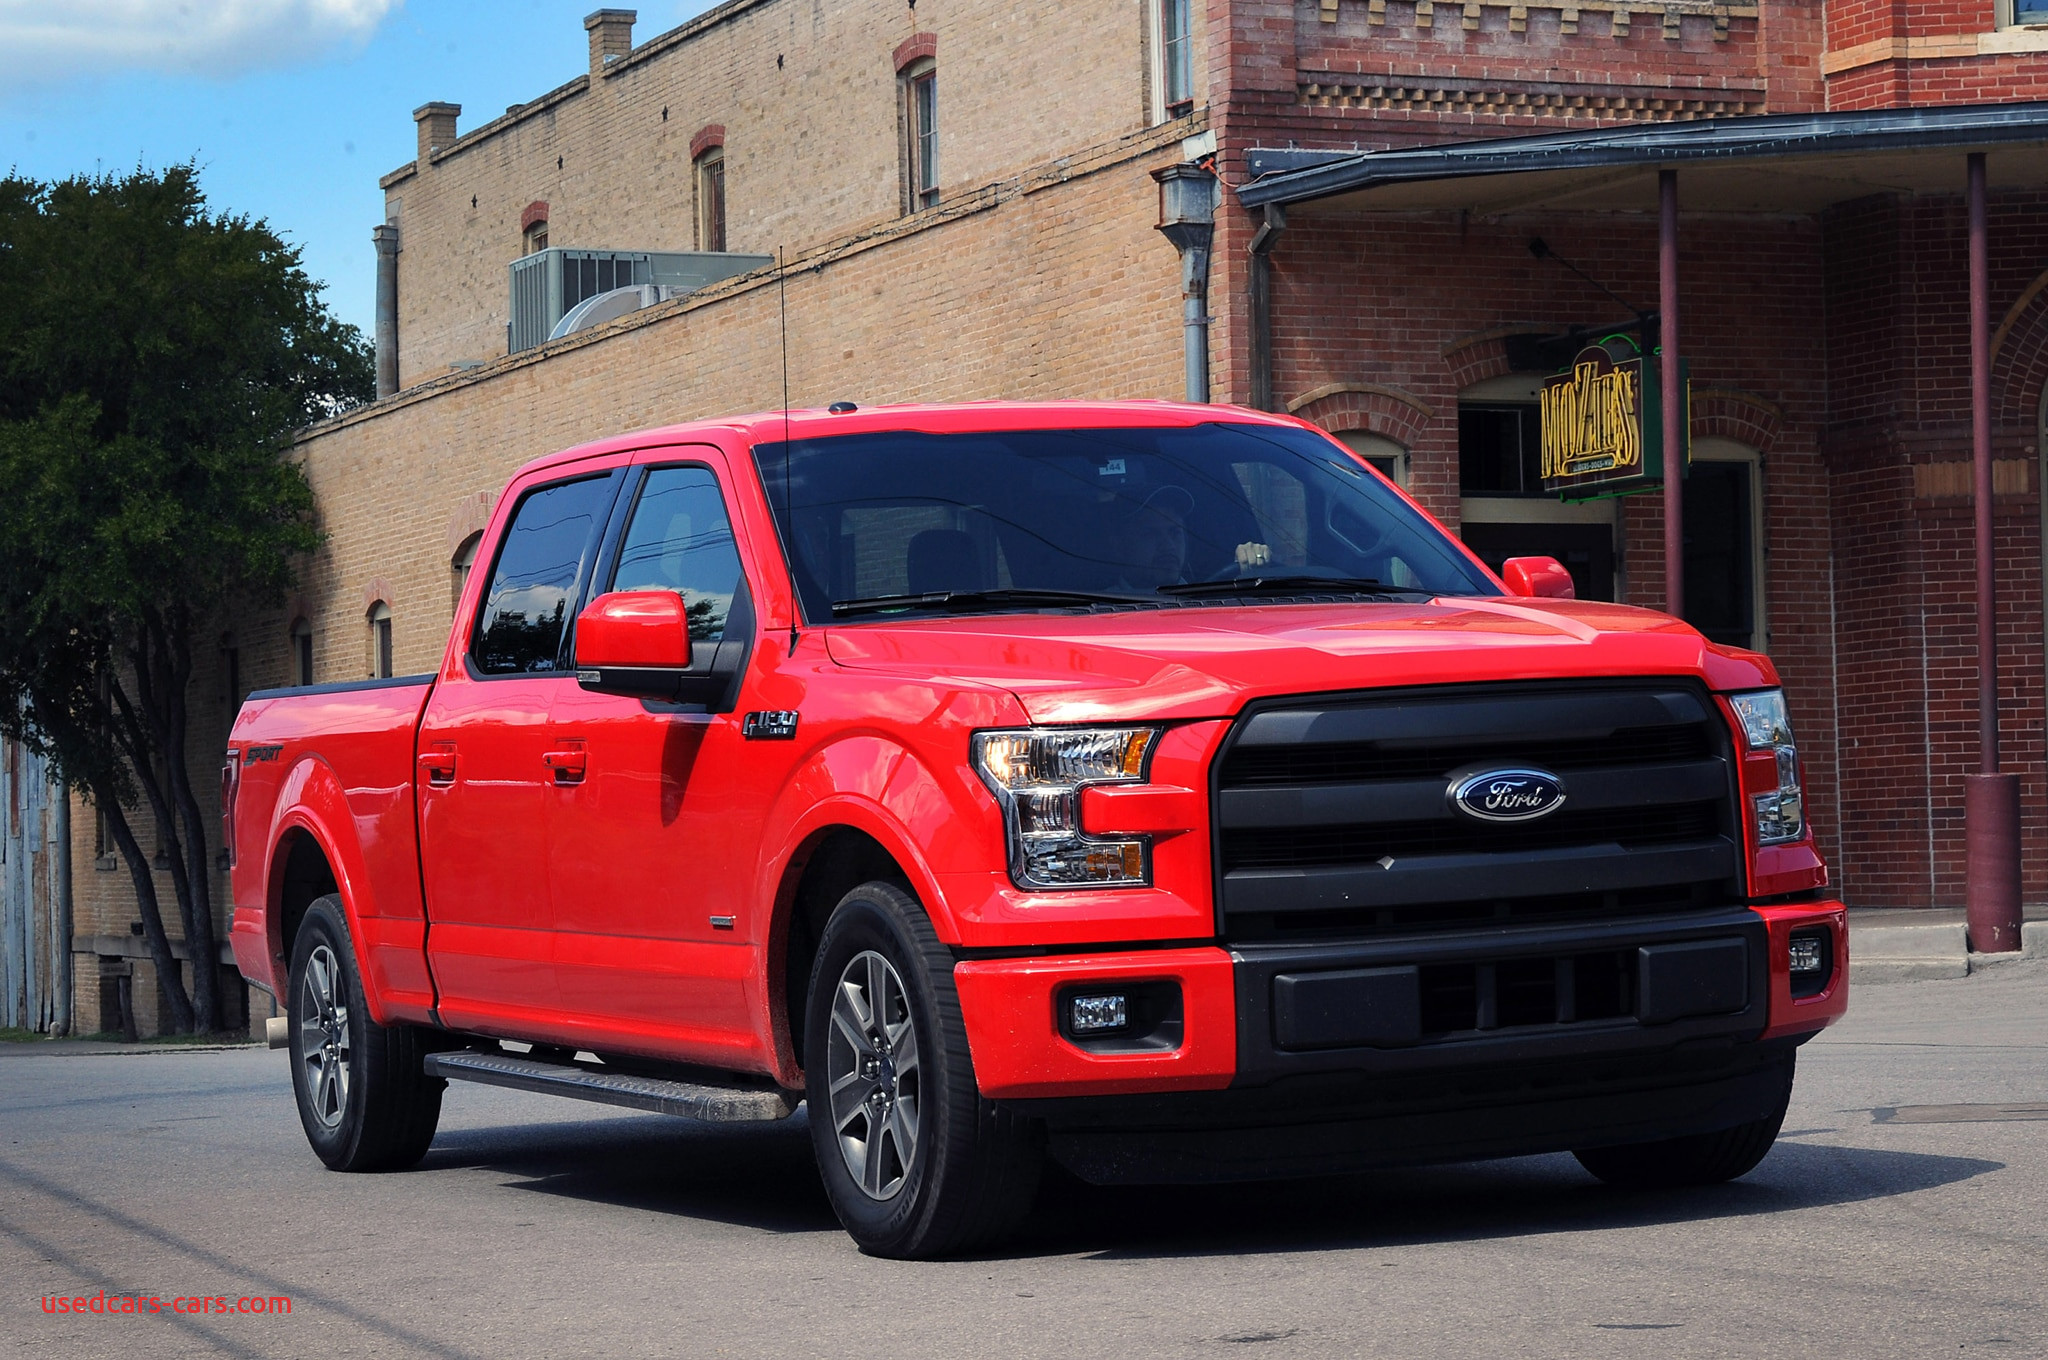 2015 ford F 150 Mpg Unique 2015 ford F 150 2 7l Achieves 18 5 Mpg Combined In Real